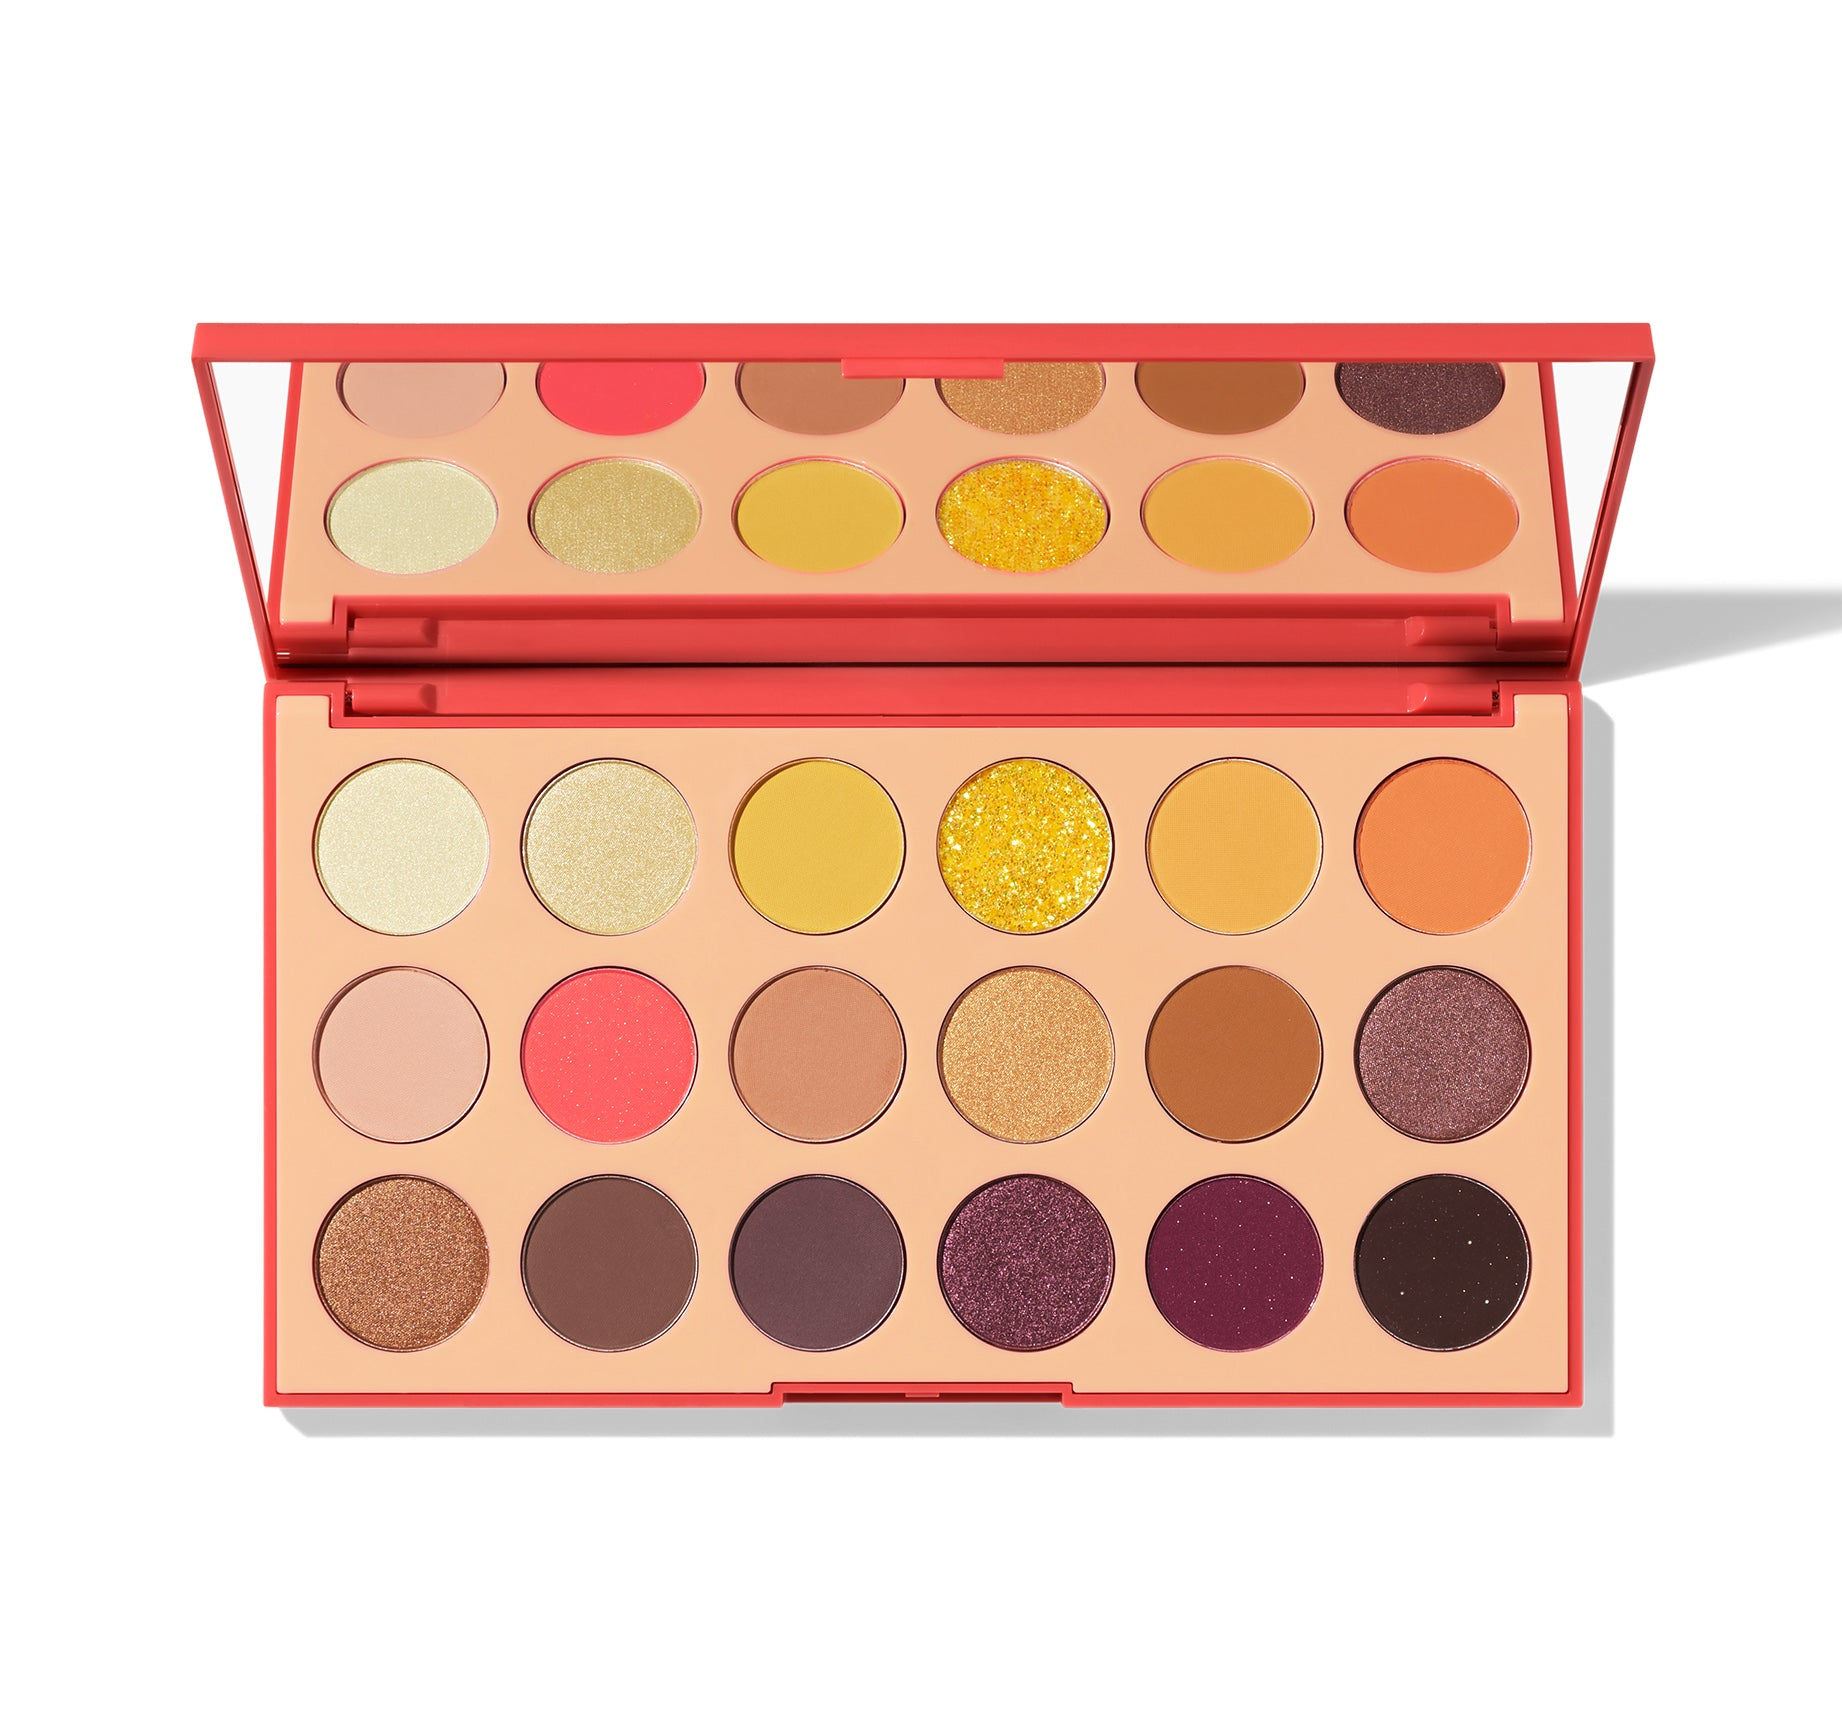 18S SUNSET BEATS ARTISTRY PALETTE, view larger image